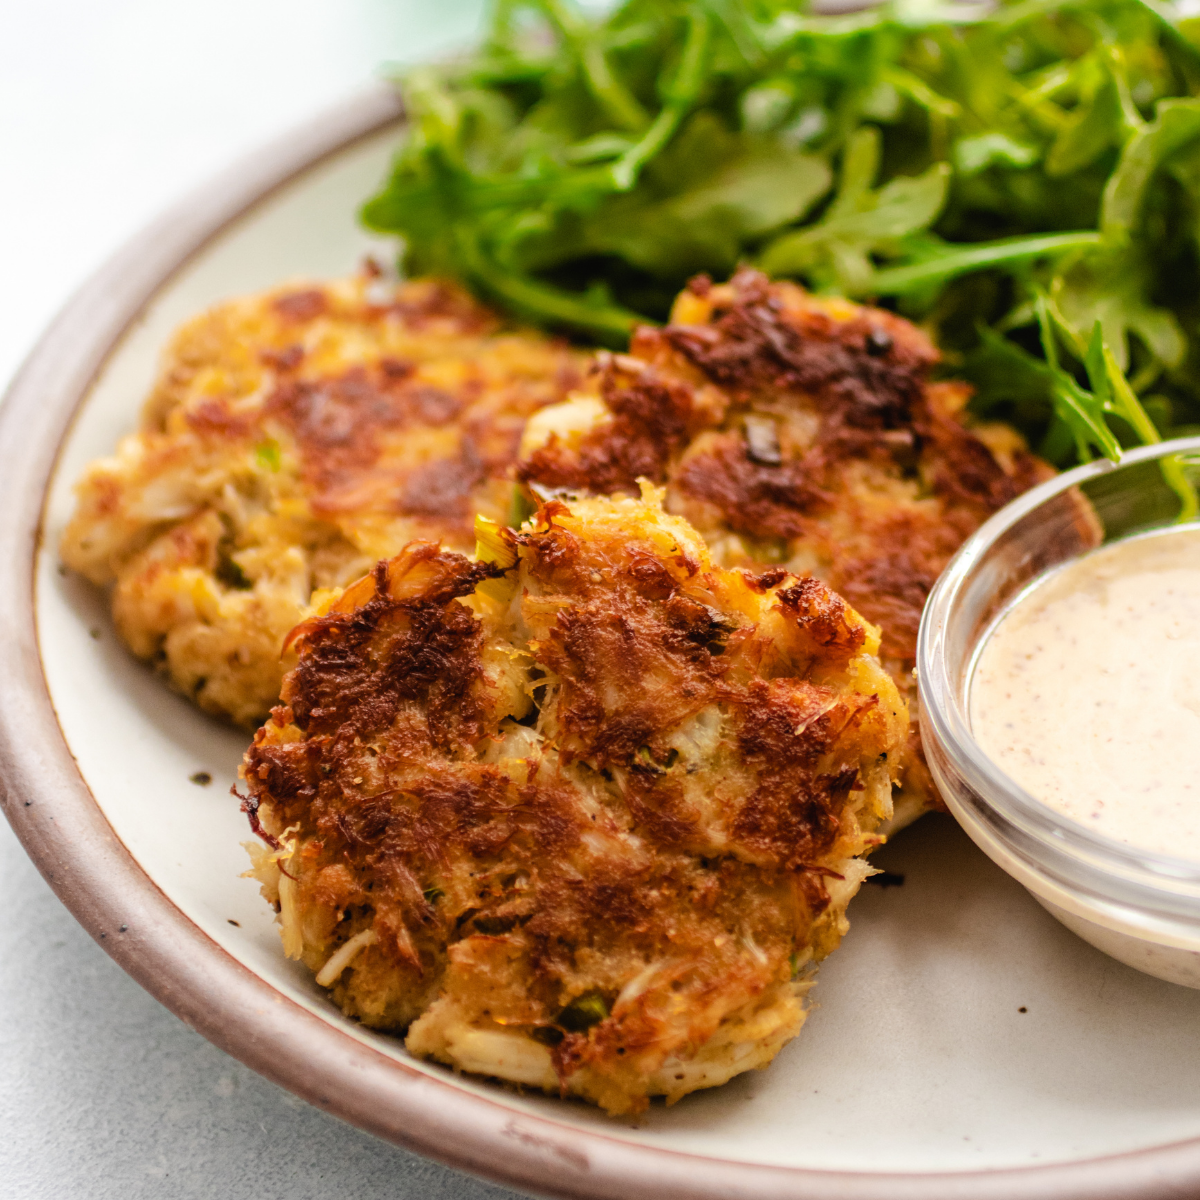 Three crab cakes on a white plate next to a small bowl of aioli.